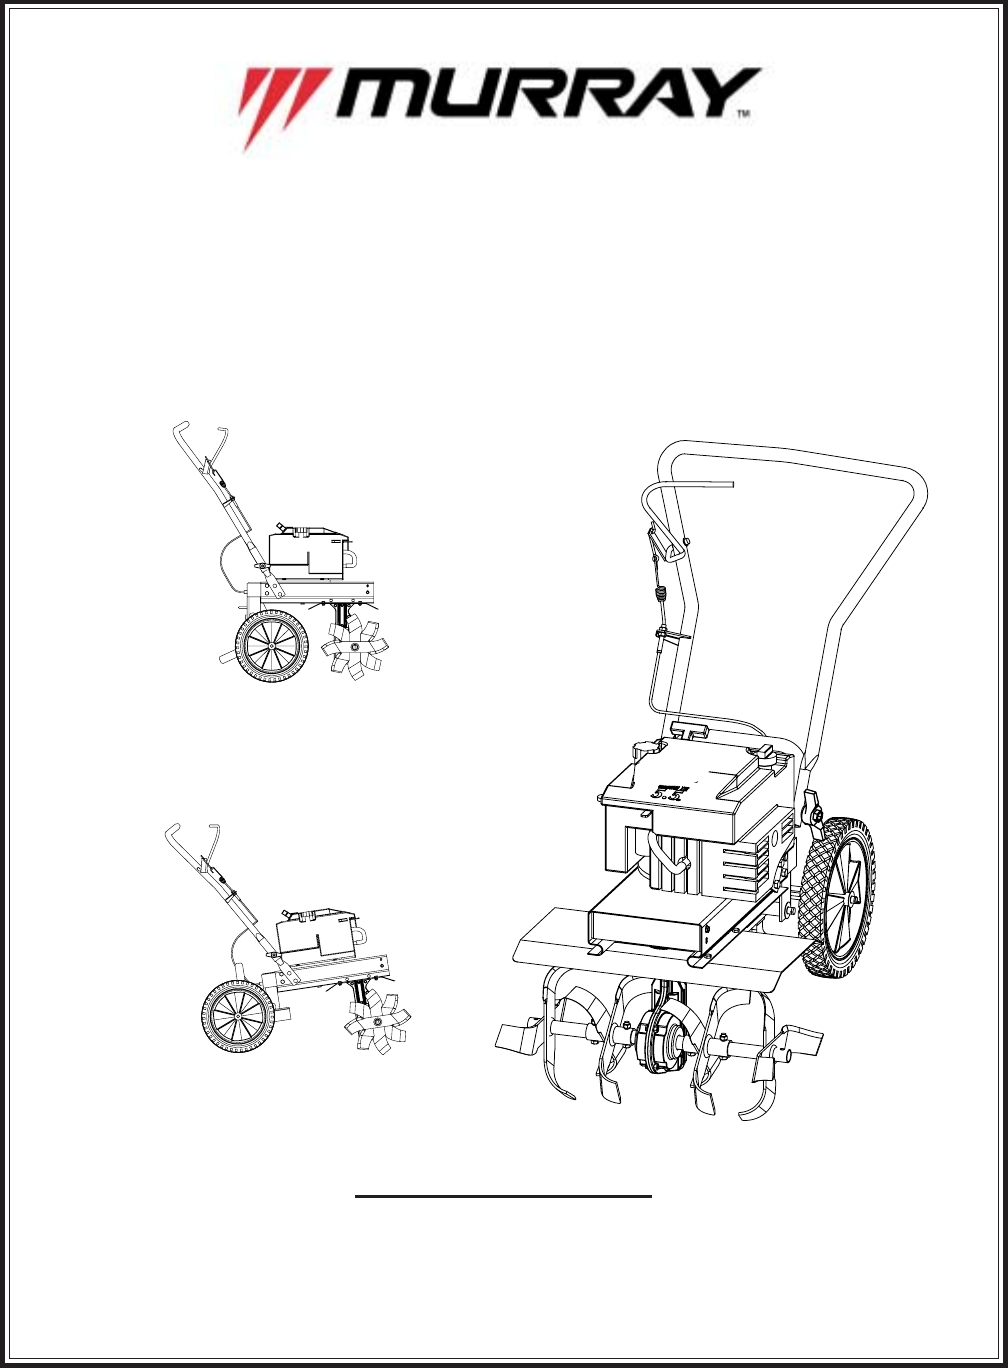 2005 suzuki reno engine diagram html